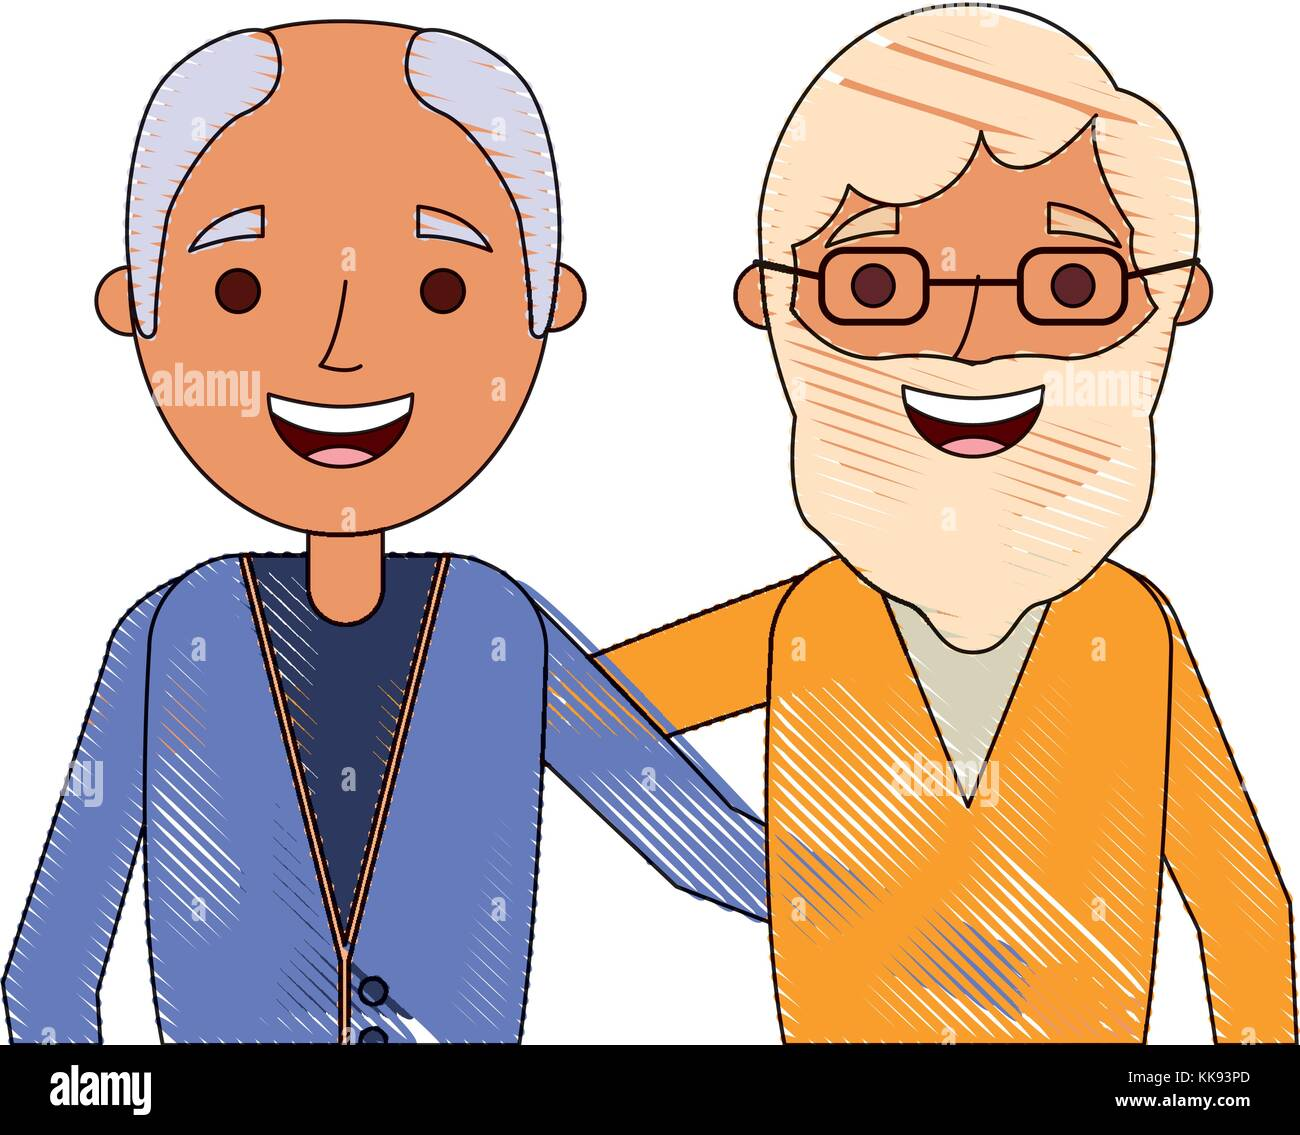 cartoon of two old men embraced friends together stock vector art